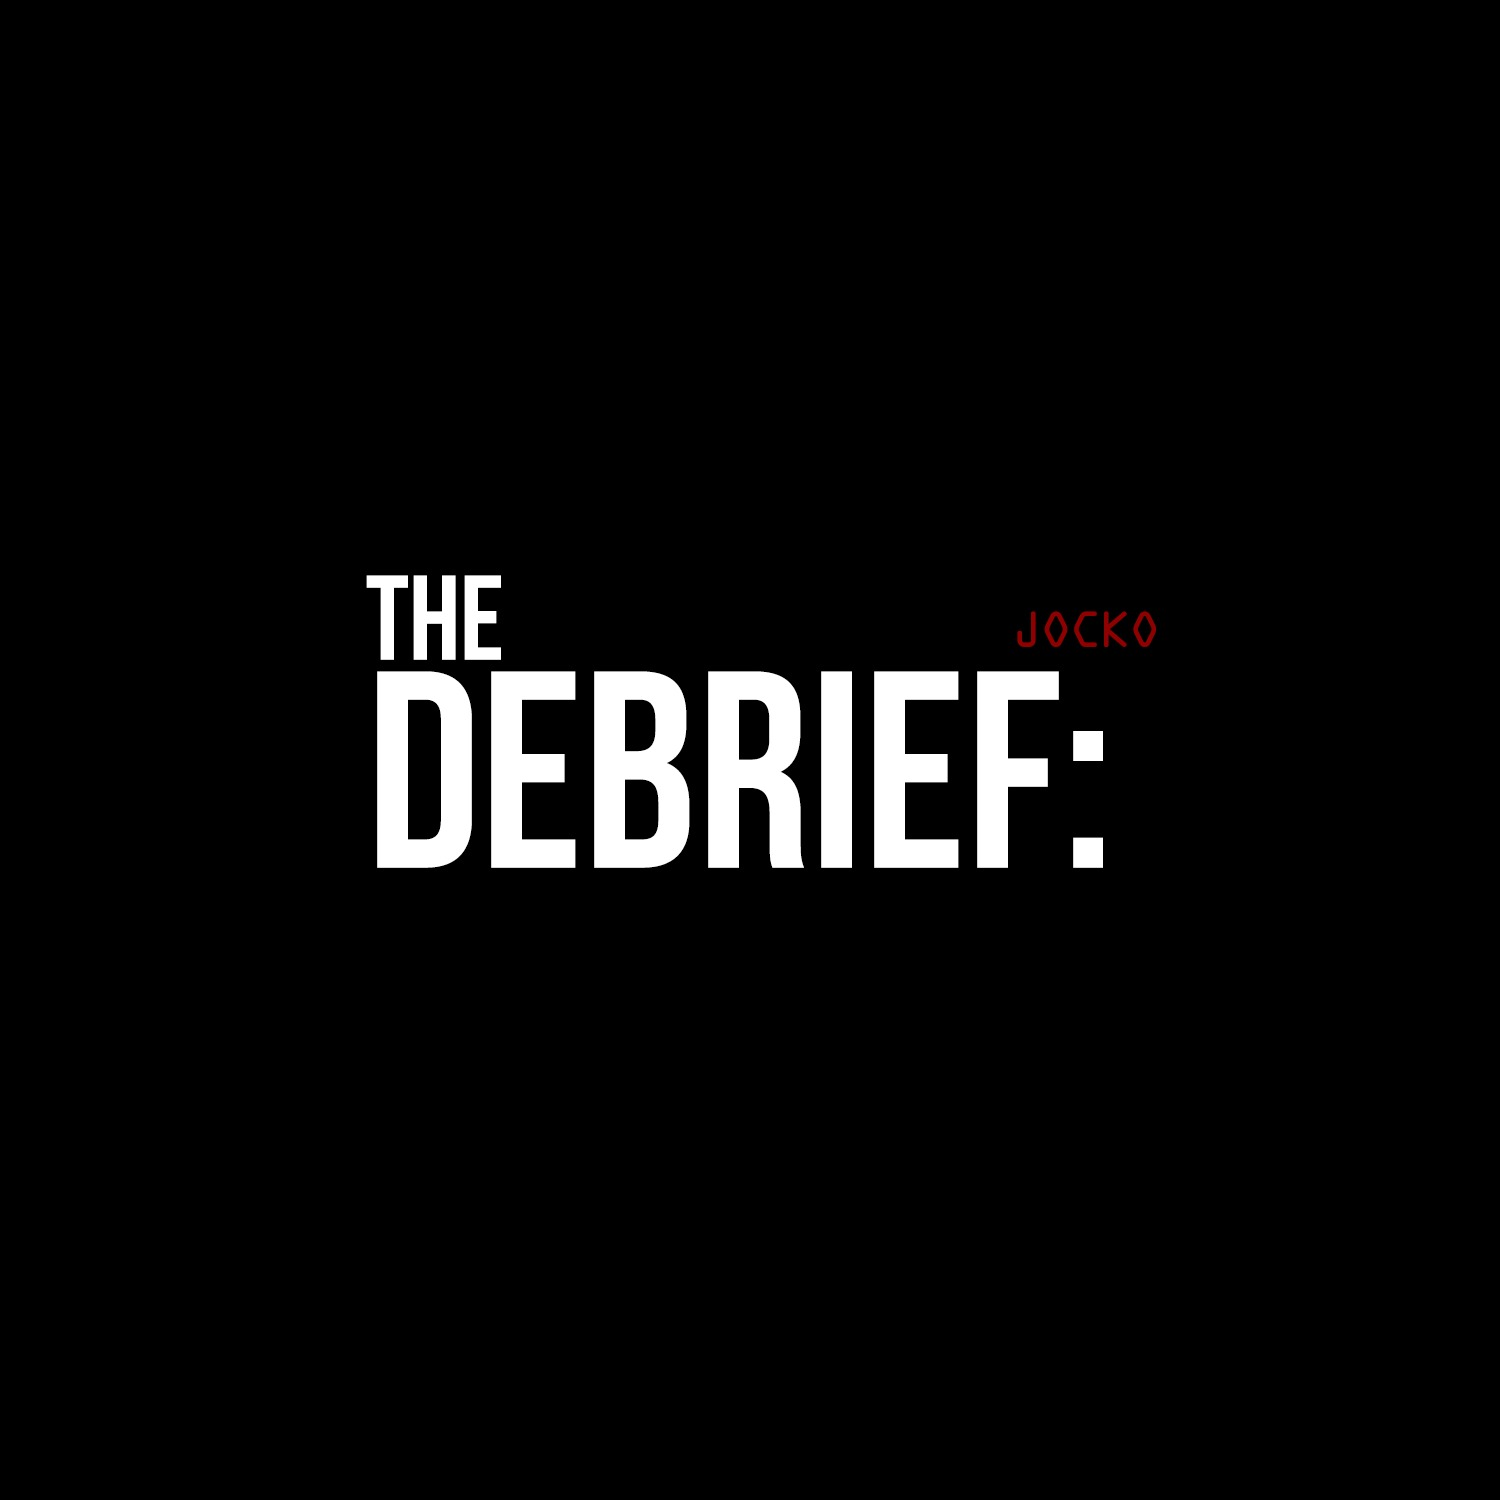 The Debrief w/ Jocko and Dave Berke #13: When To Put Your Foot Down to Get Your Subordinates On Board with The Plan